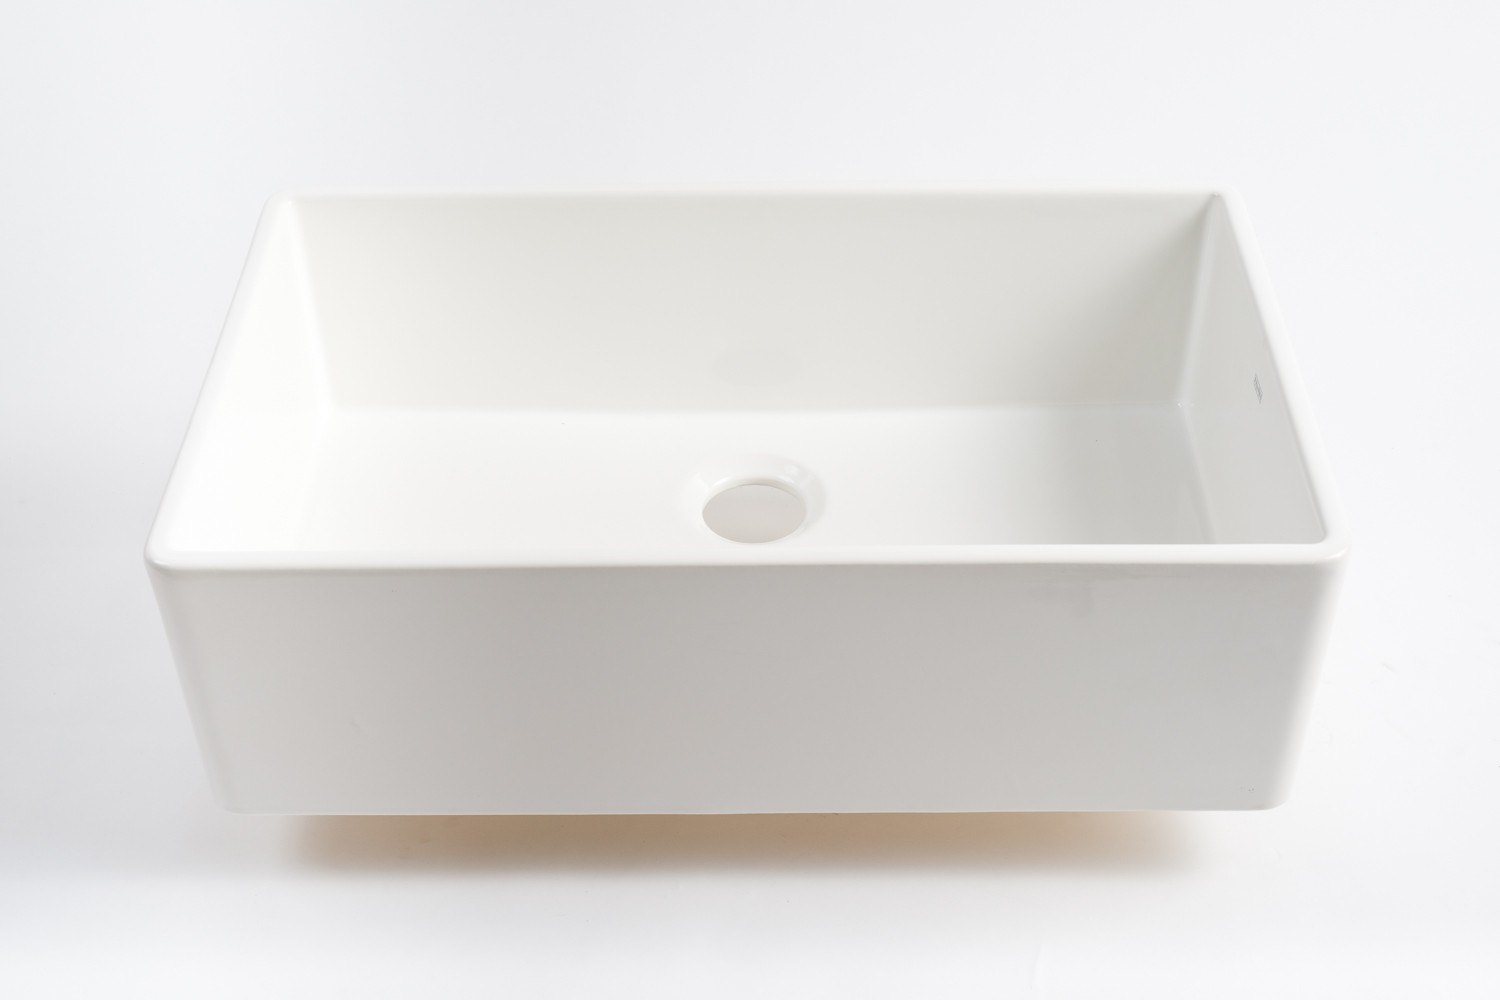 Farmhouse Sink 33 Inch White : ... FHK710-33 Farm House 33 Inch Apron Front Single Bowl Fireclay Sink